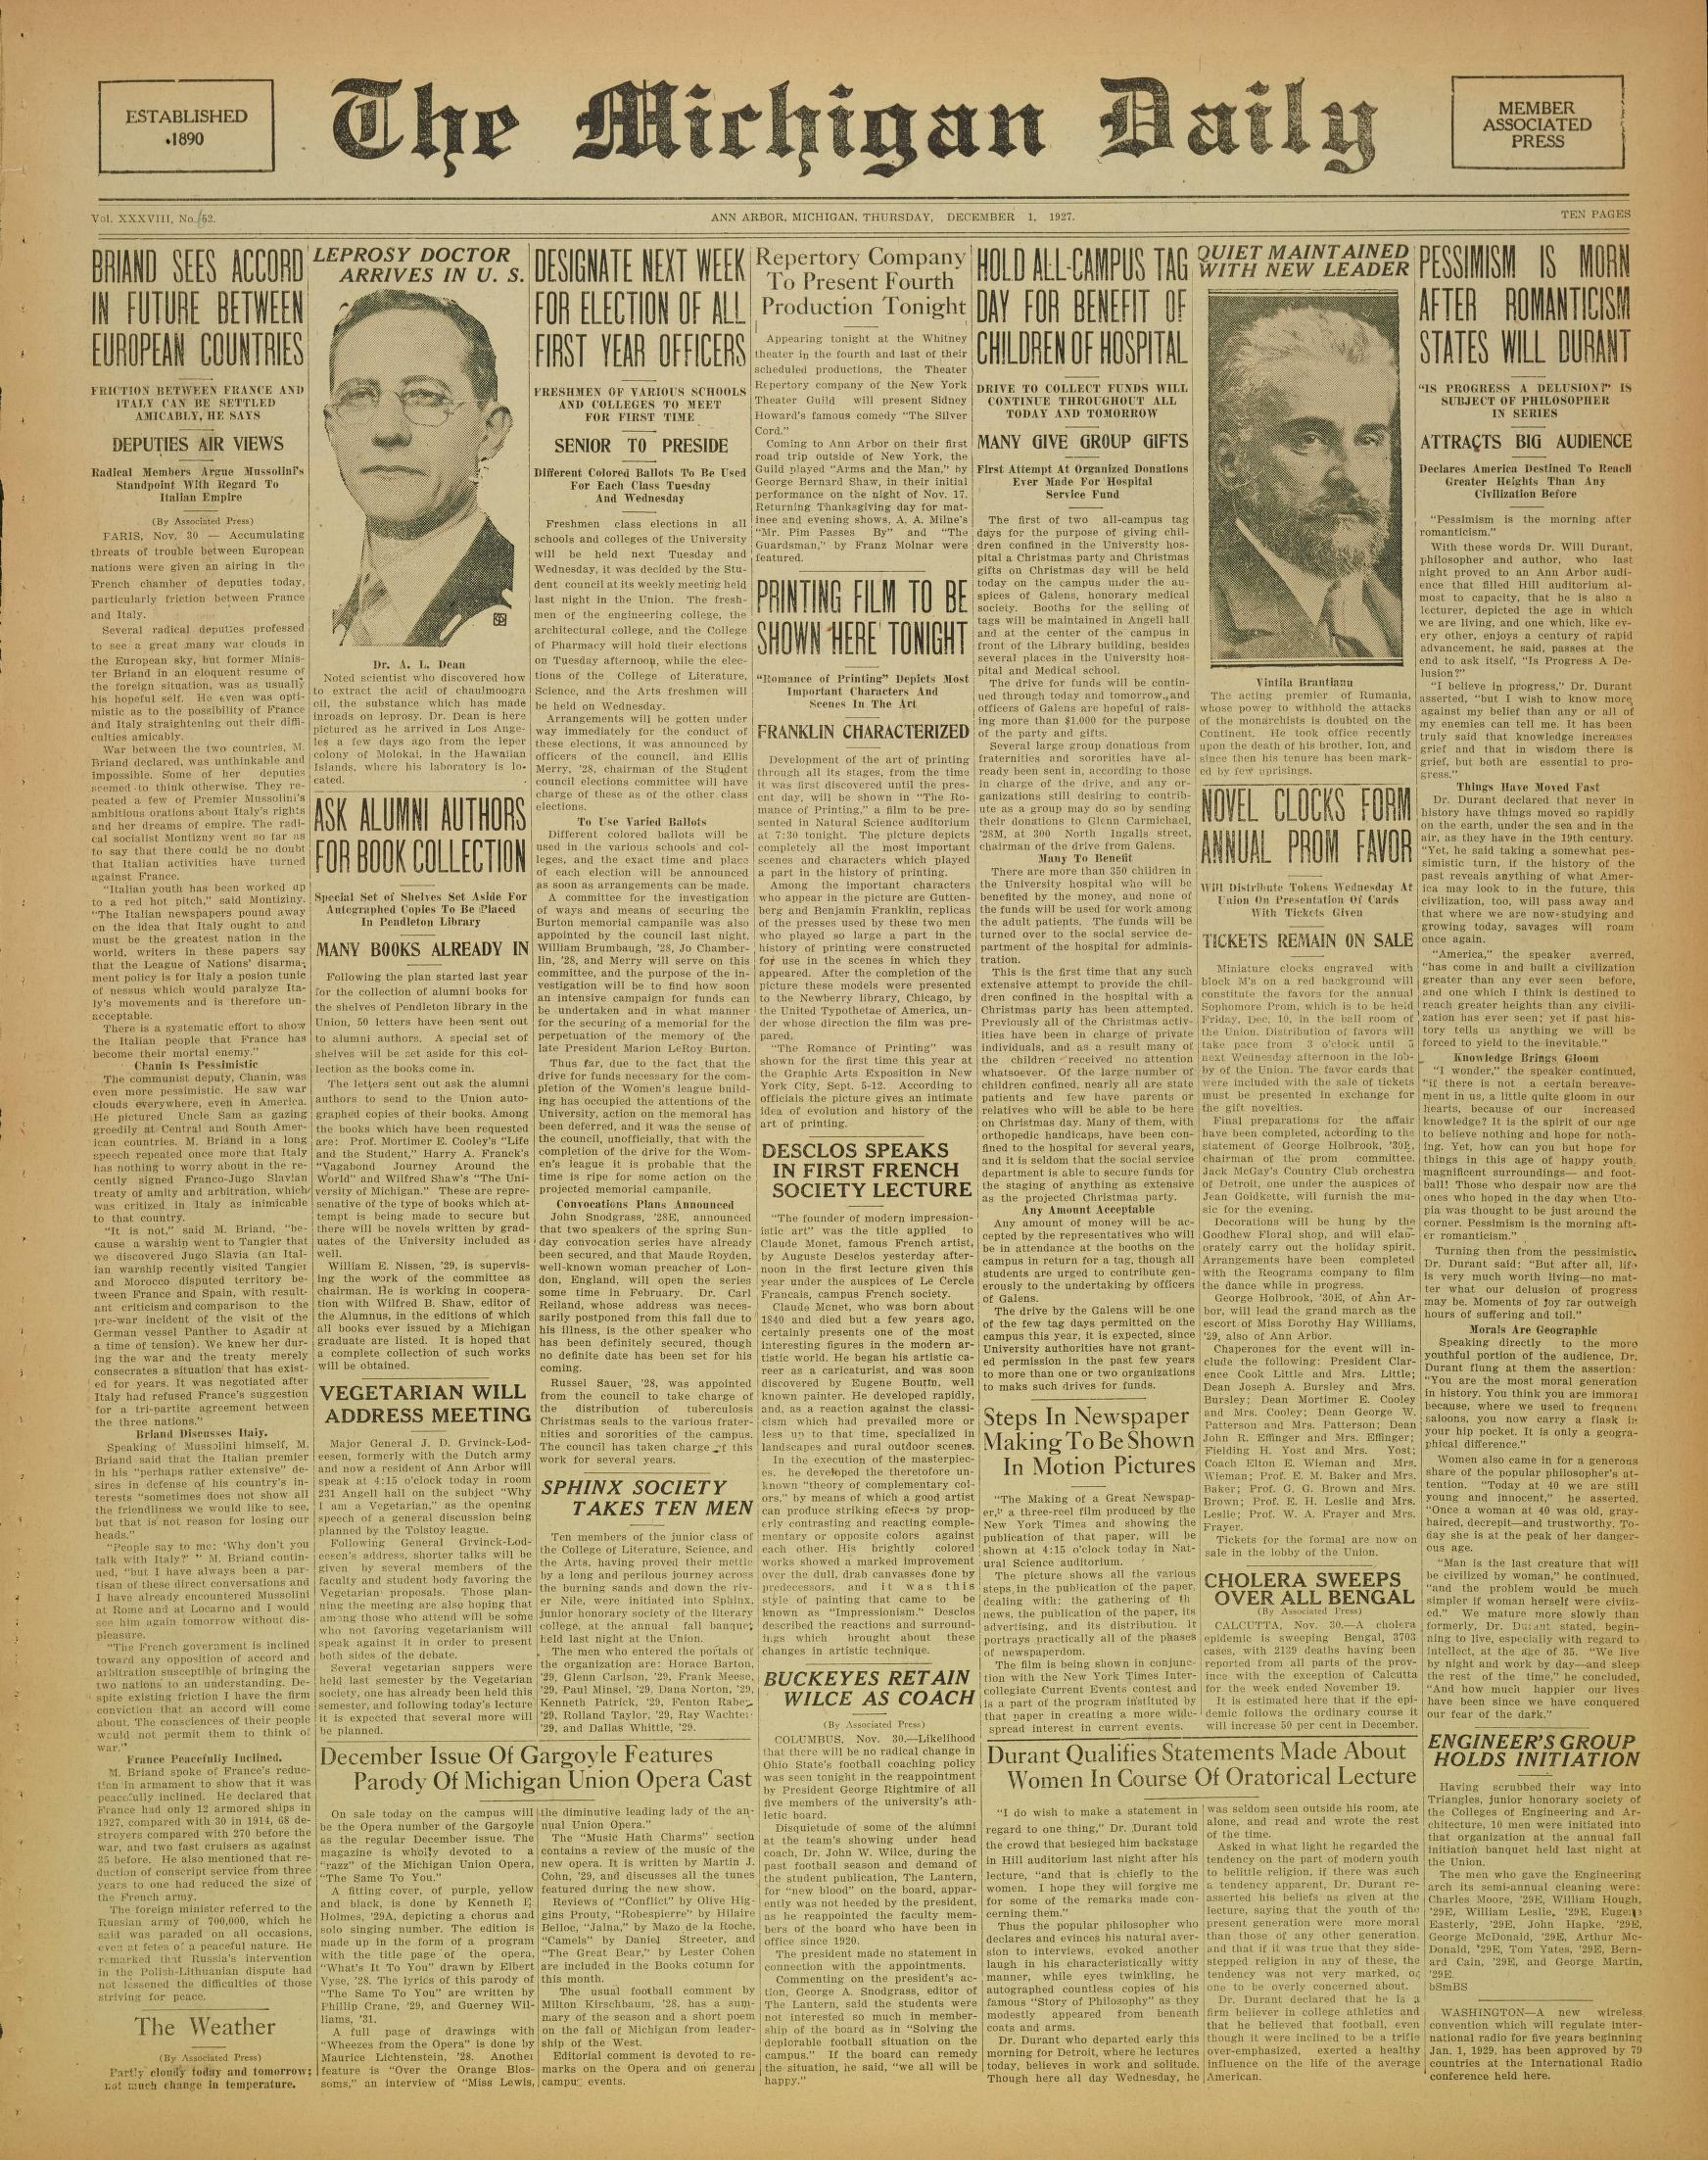 Michigan Daily Digital Archives December 01 1927 vol 38 iss